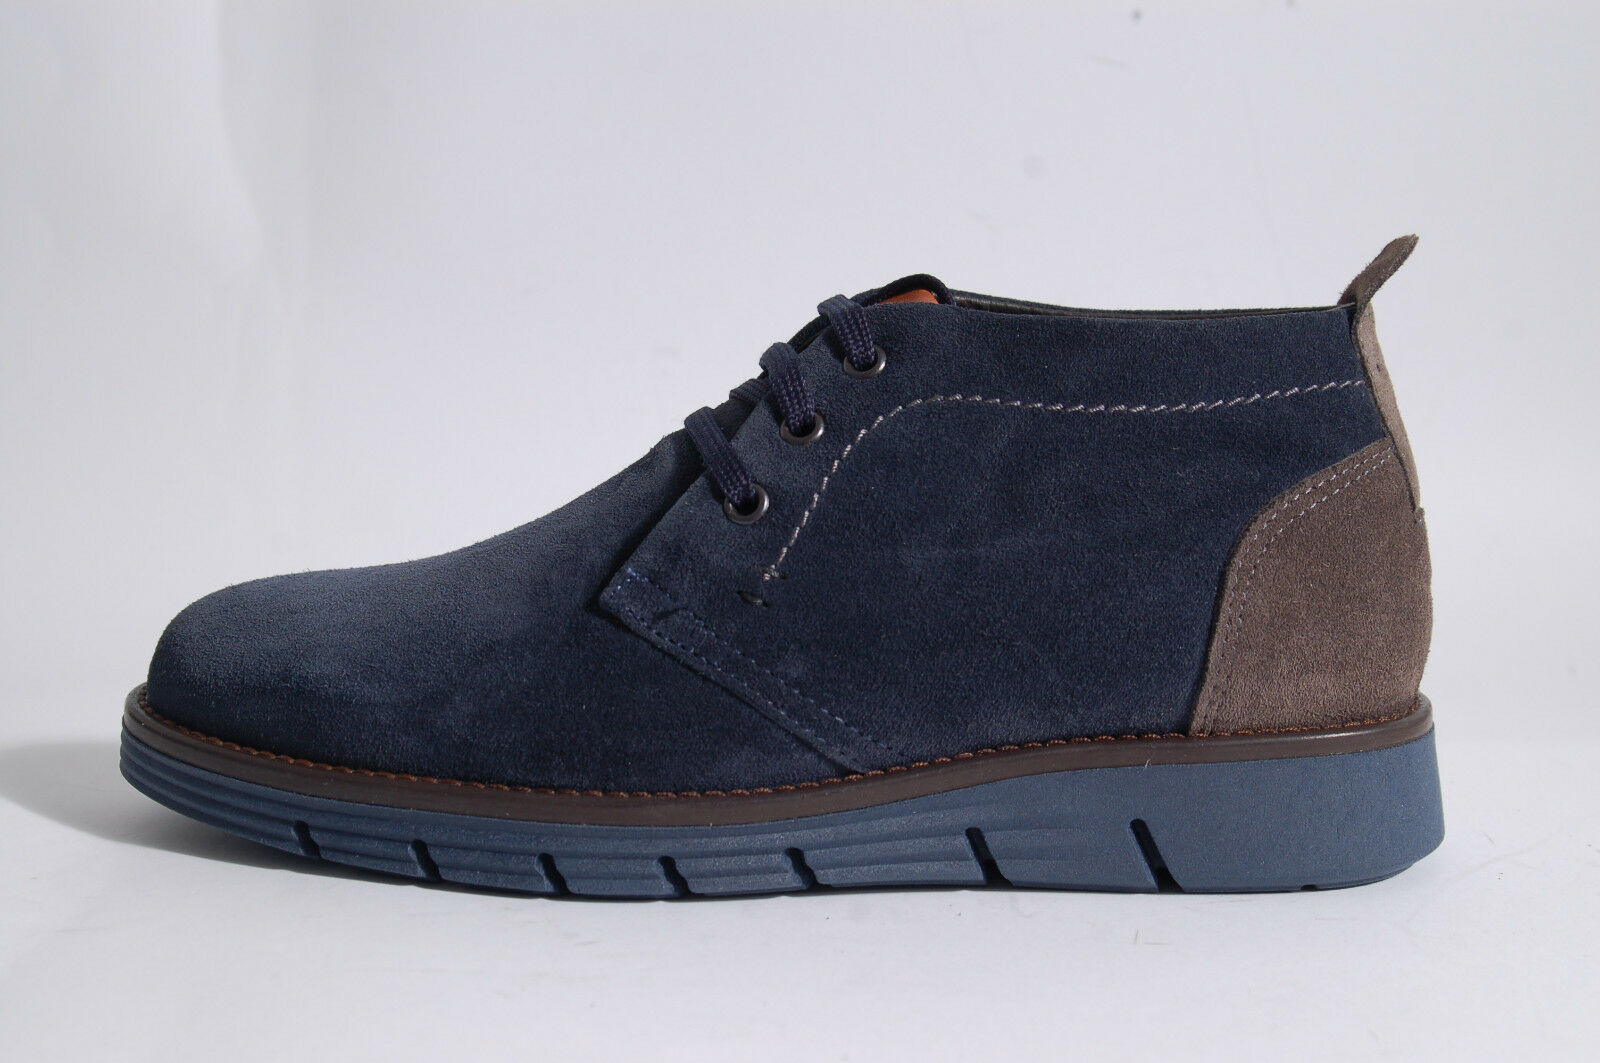 Acc Hand Made Italian Shoes Boots Smooth And Suede 1500